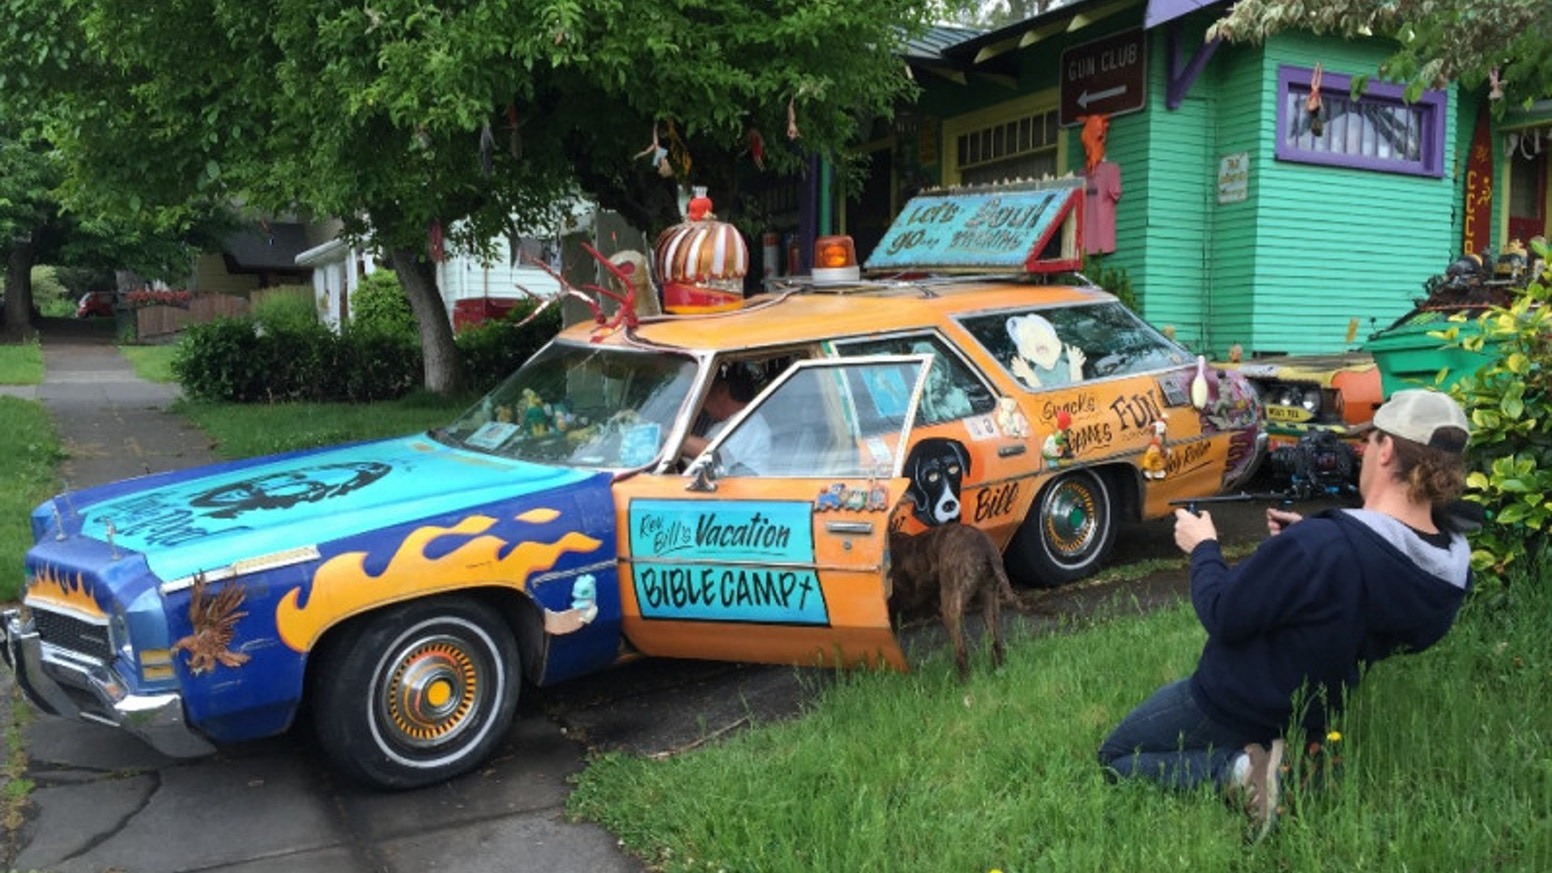 Documentary profile of art car creator and Portland Cacophony Society co-founder Rev. Chuck Linville.